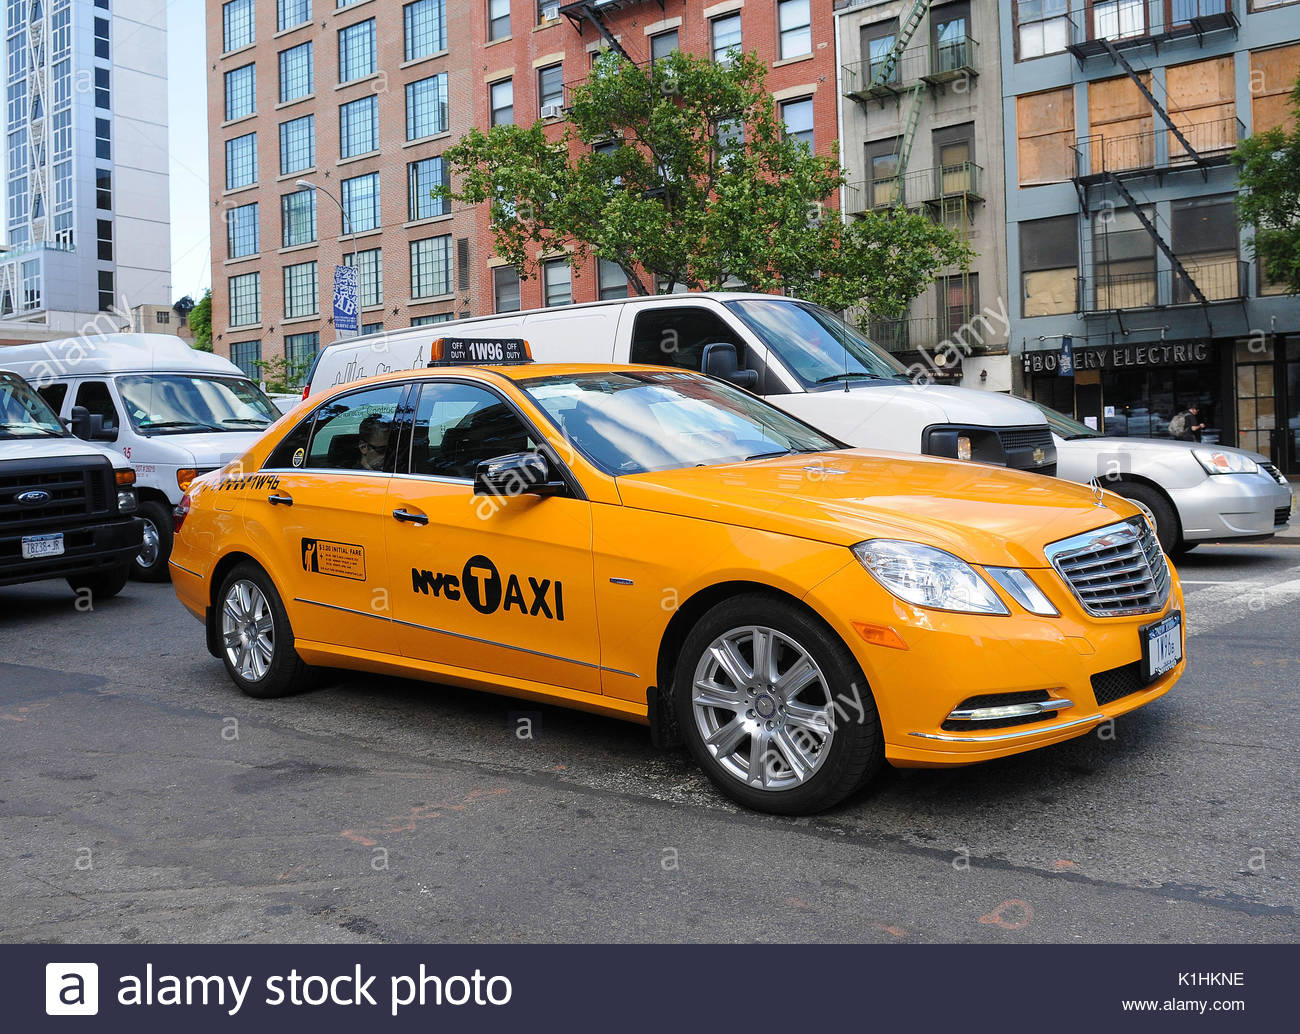 nyc taxi cab mercedes benz yellow taxi cab spotted on the. Black Bedroom Furniture Sets. Home Design Ideas